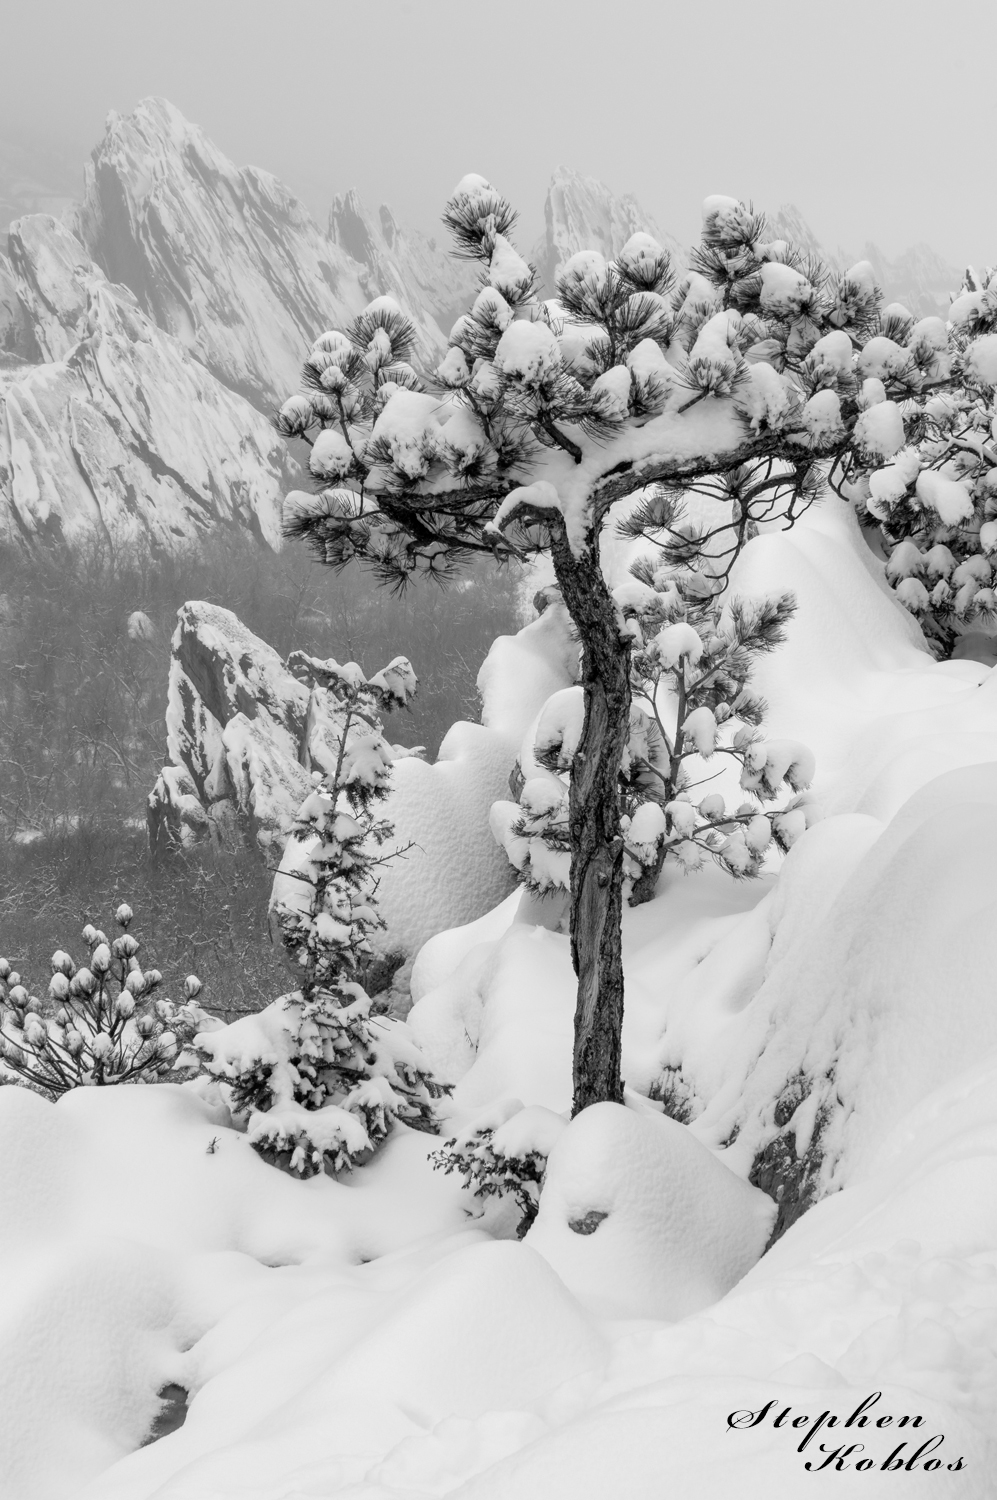 Winter at Roxborough. Limited Edition of 100